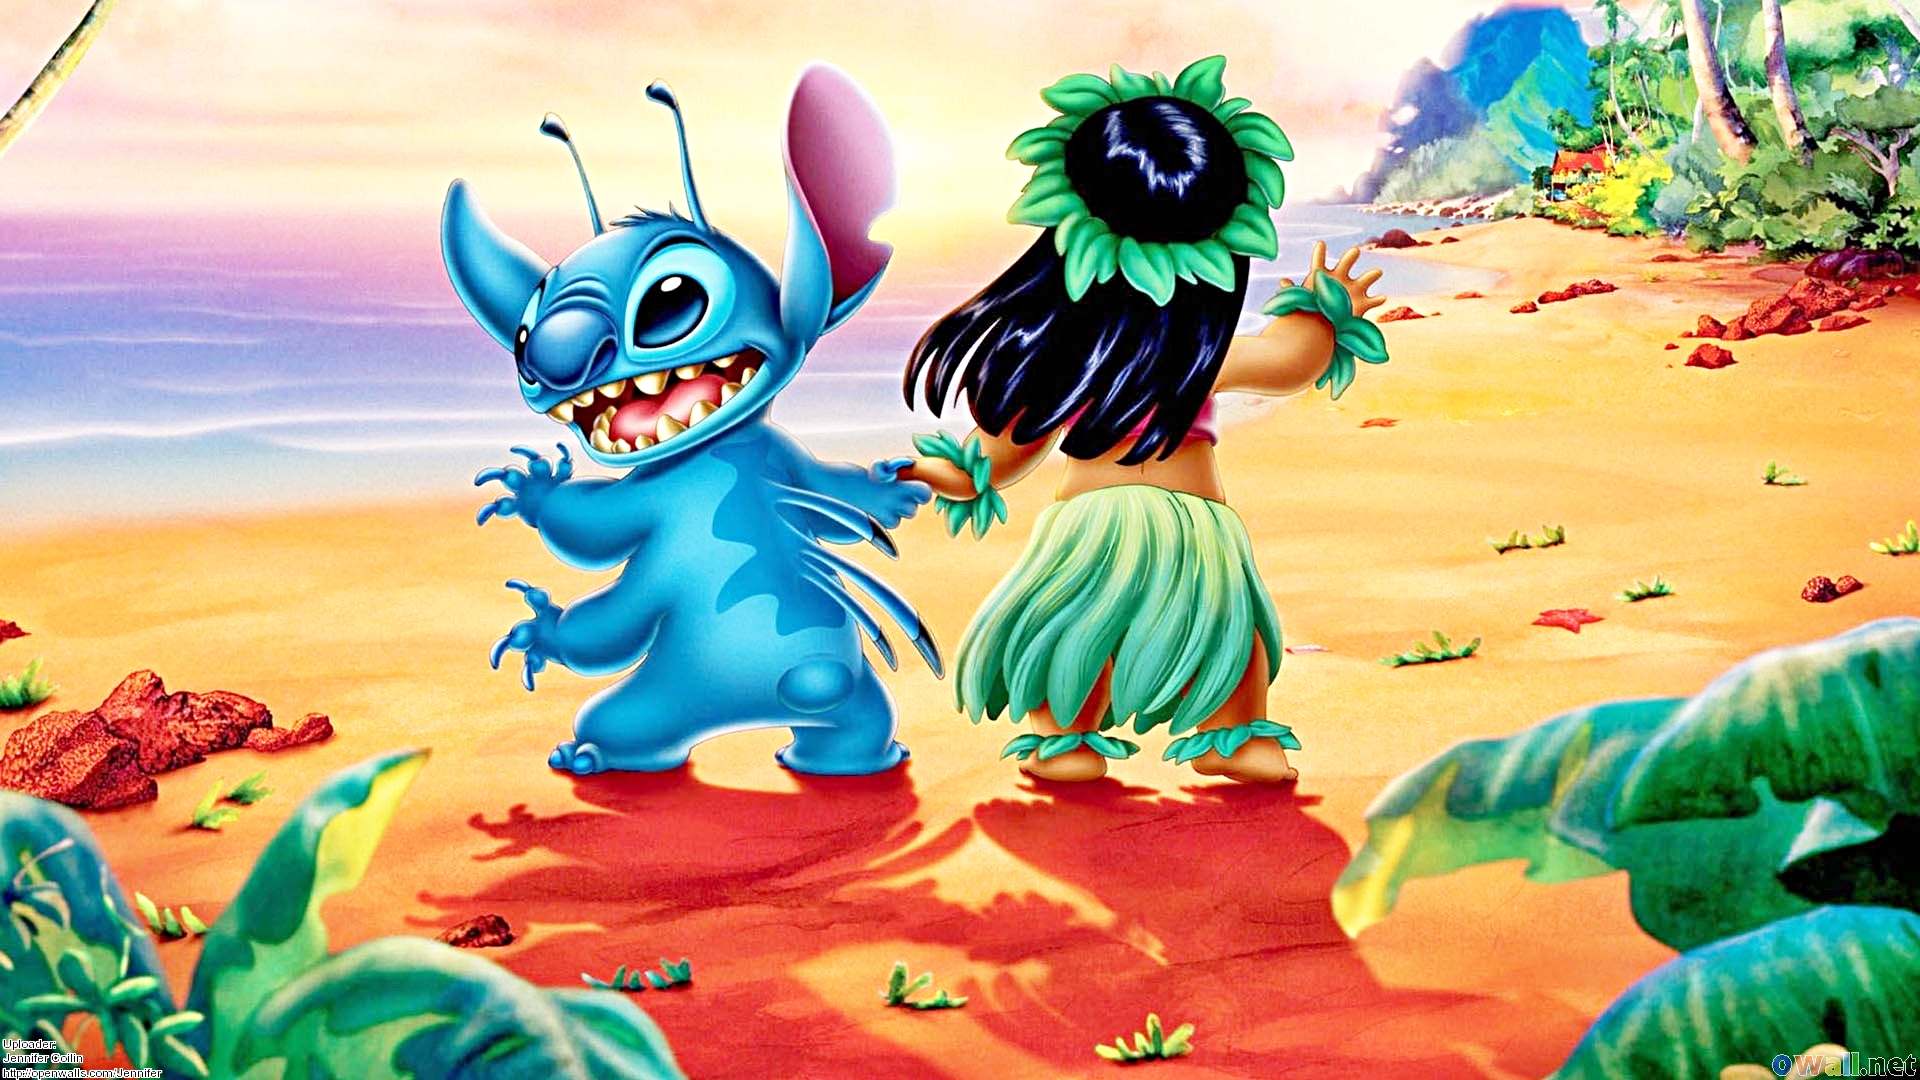 Disney Wallpapers   Stitch Lilo Pelekai   Walt Disney Characters 1920x1080